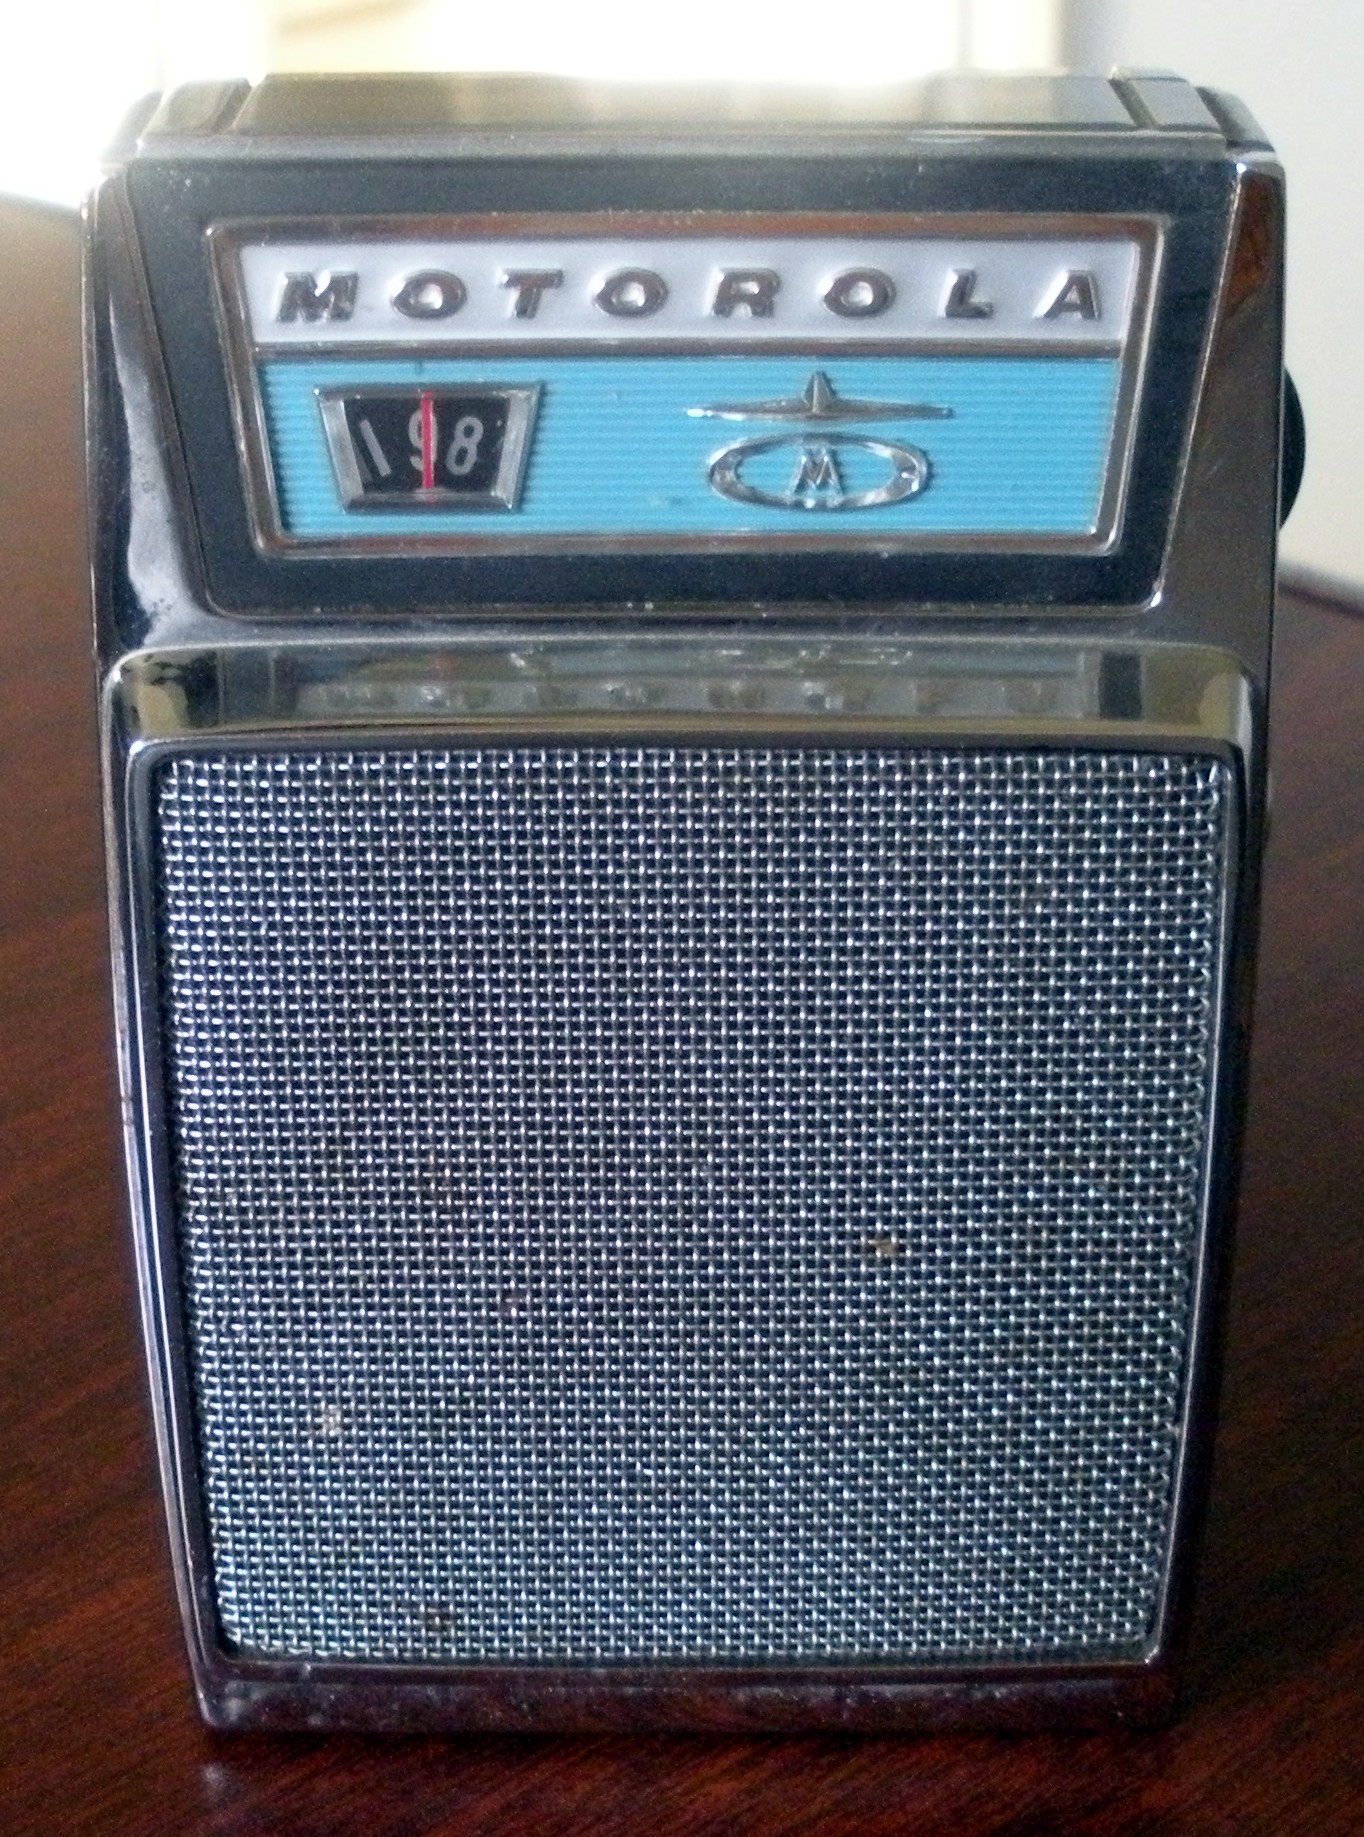 My latest find - Motorola X15A DSCN9659